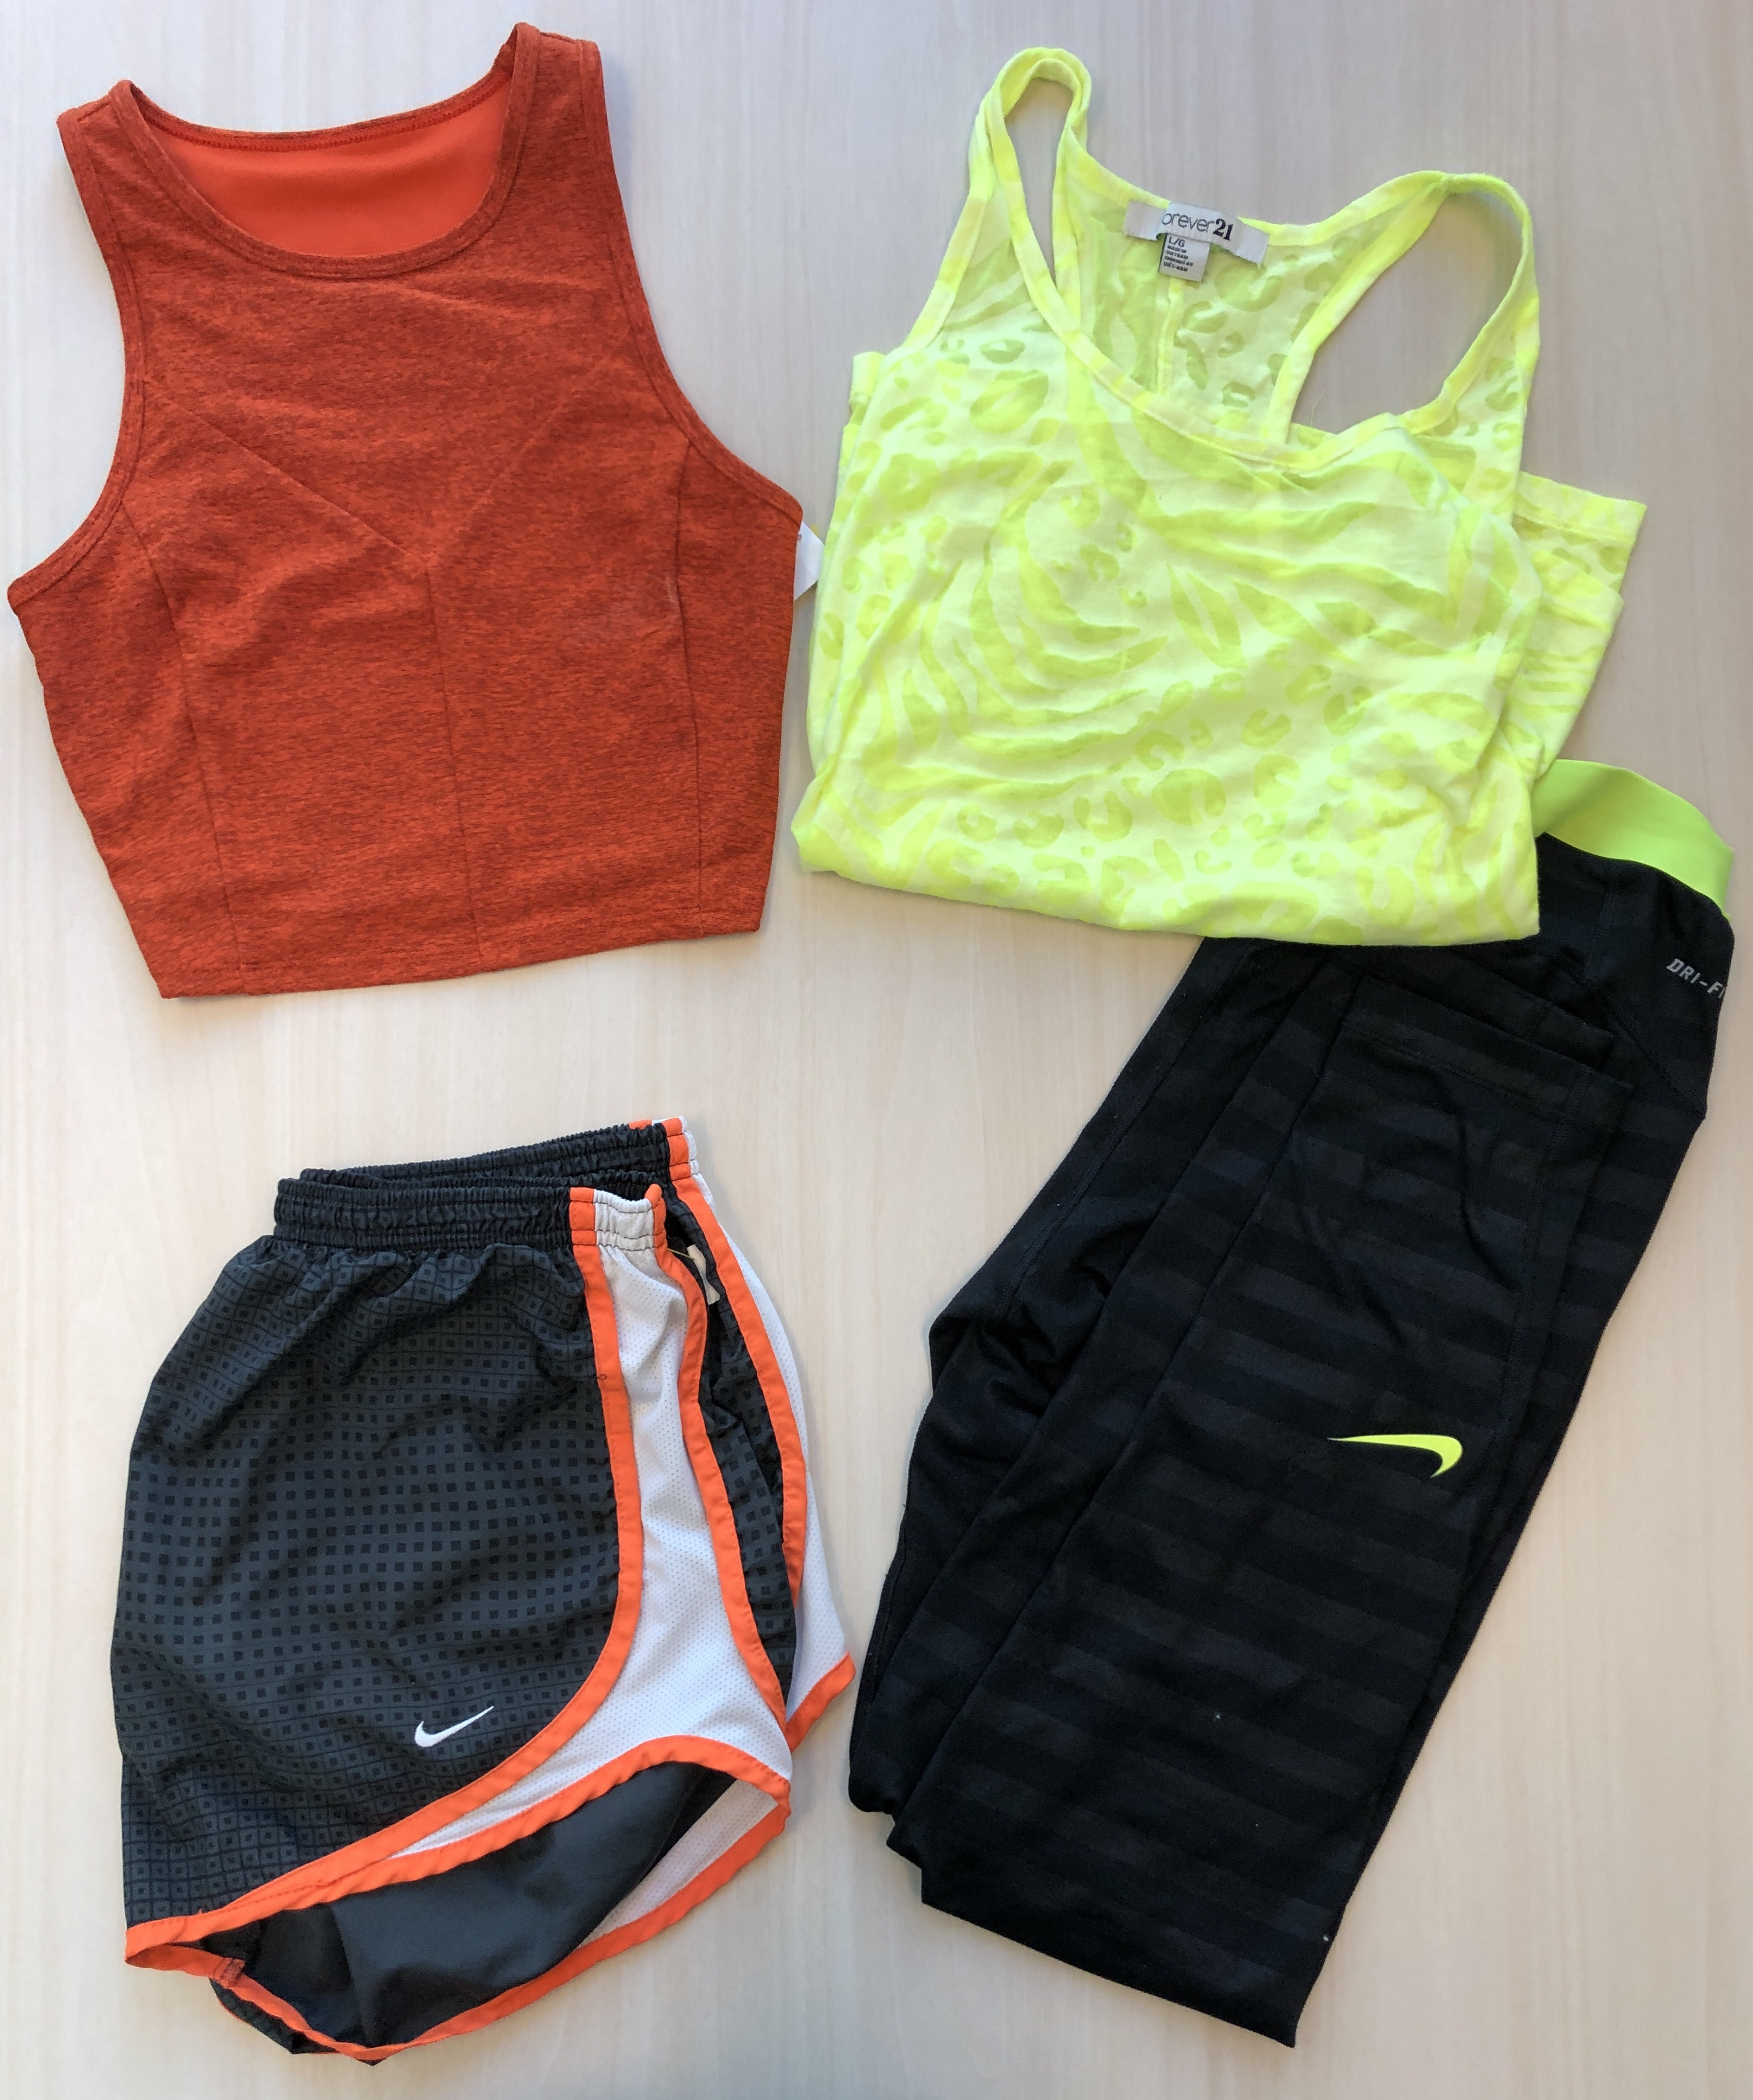 Two tank tops and two shorts